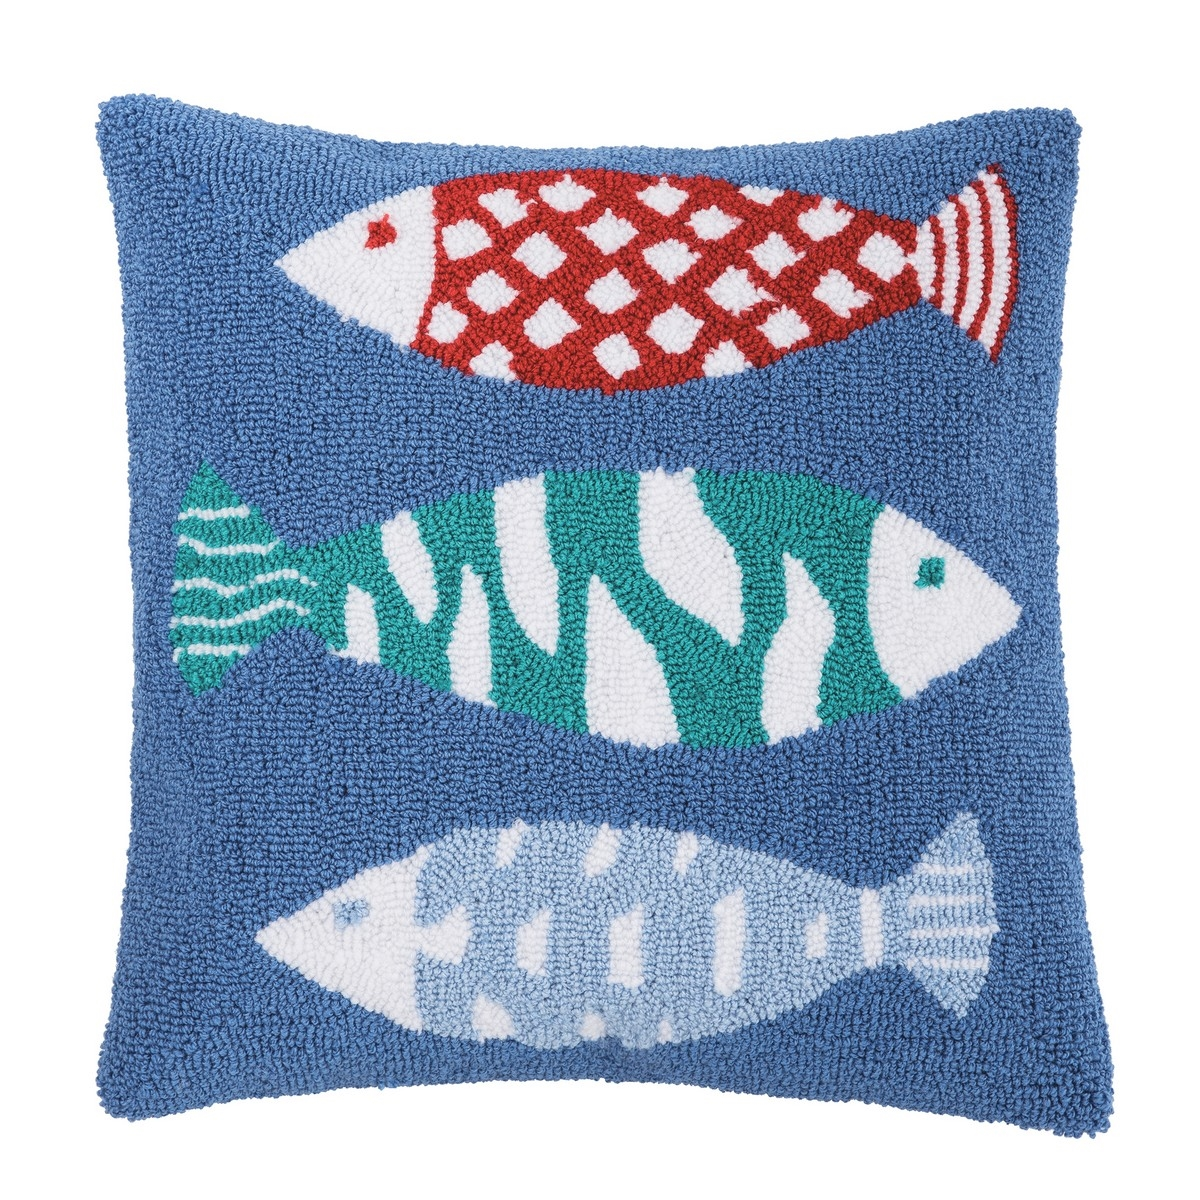 Harpswell Fish Pillow